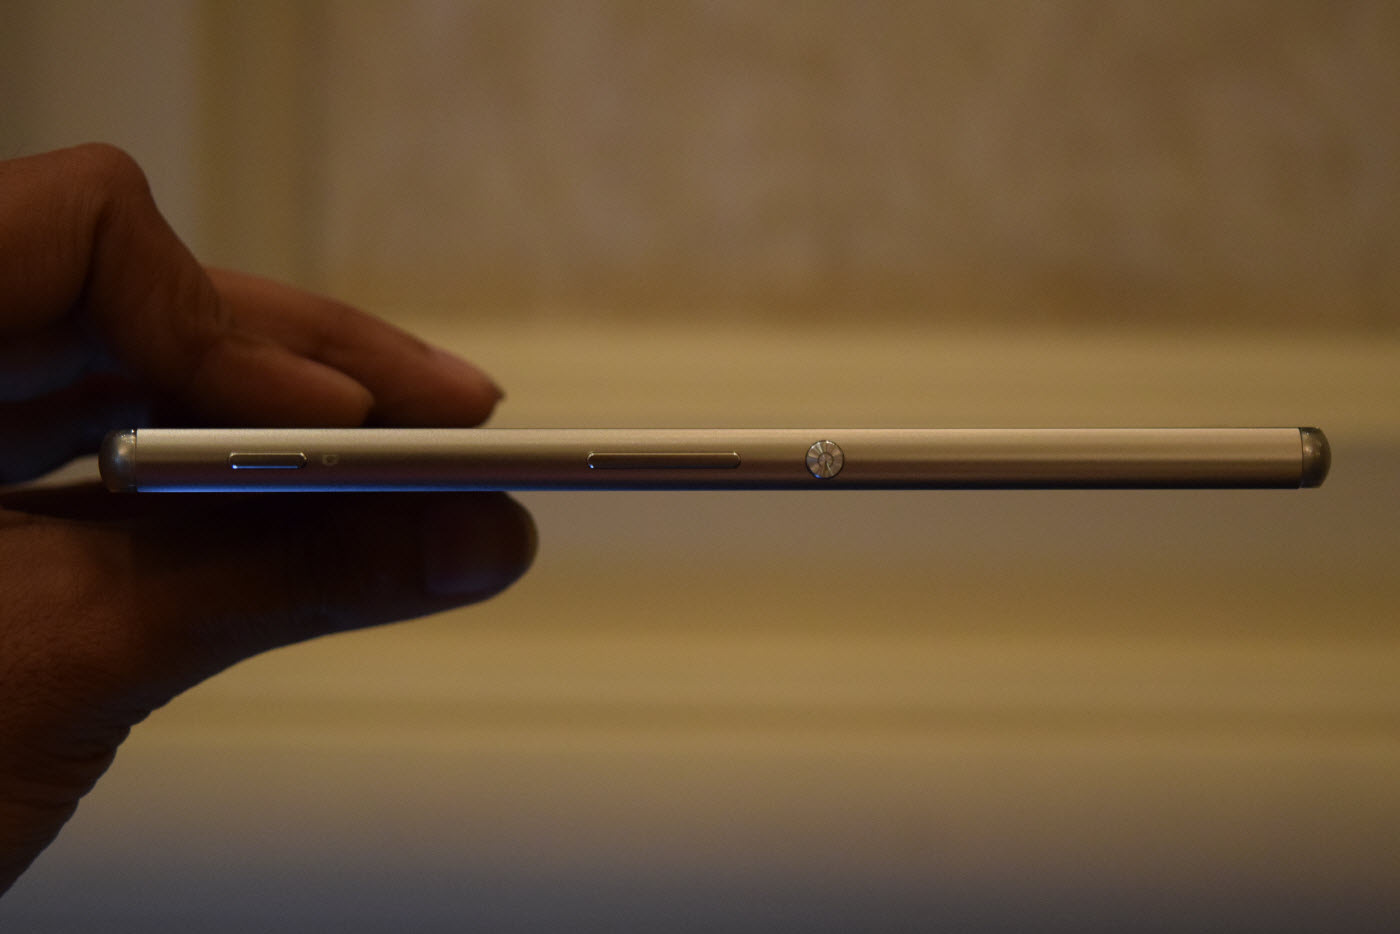 Xperia Z3+ 6.9mm thick